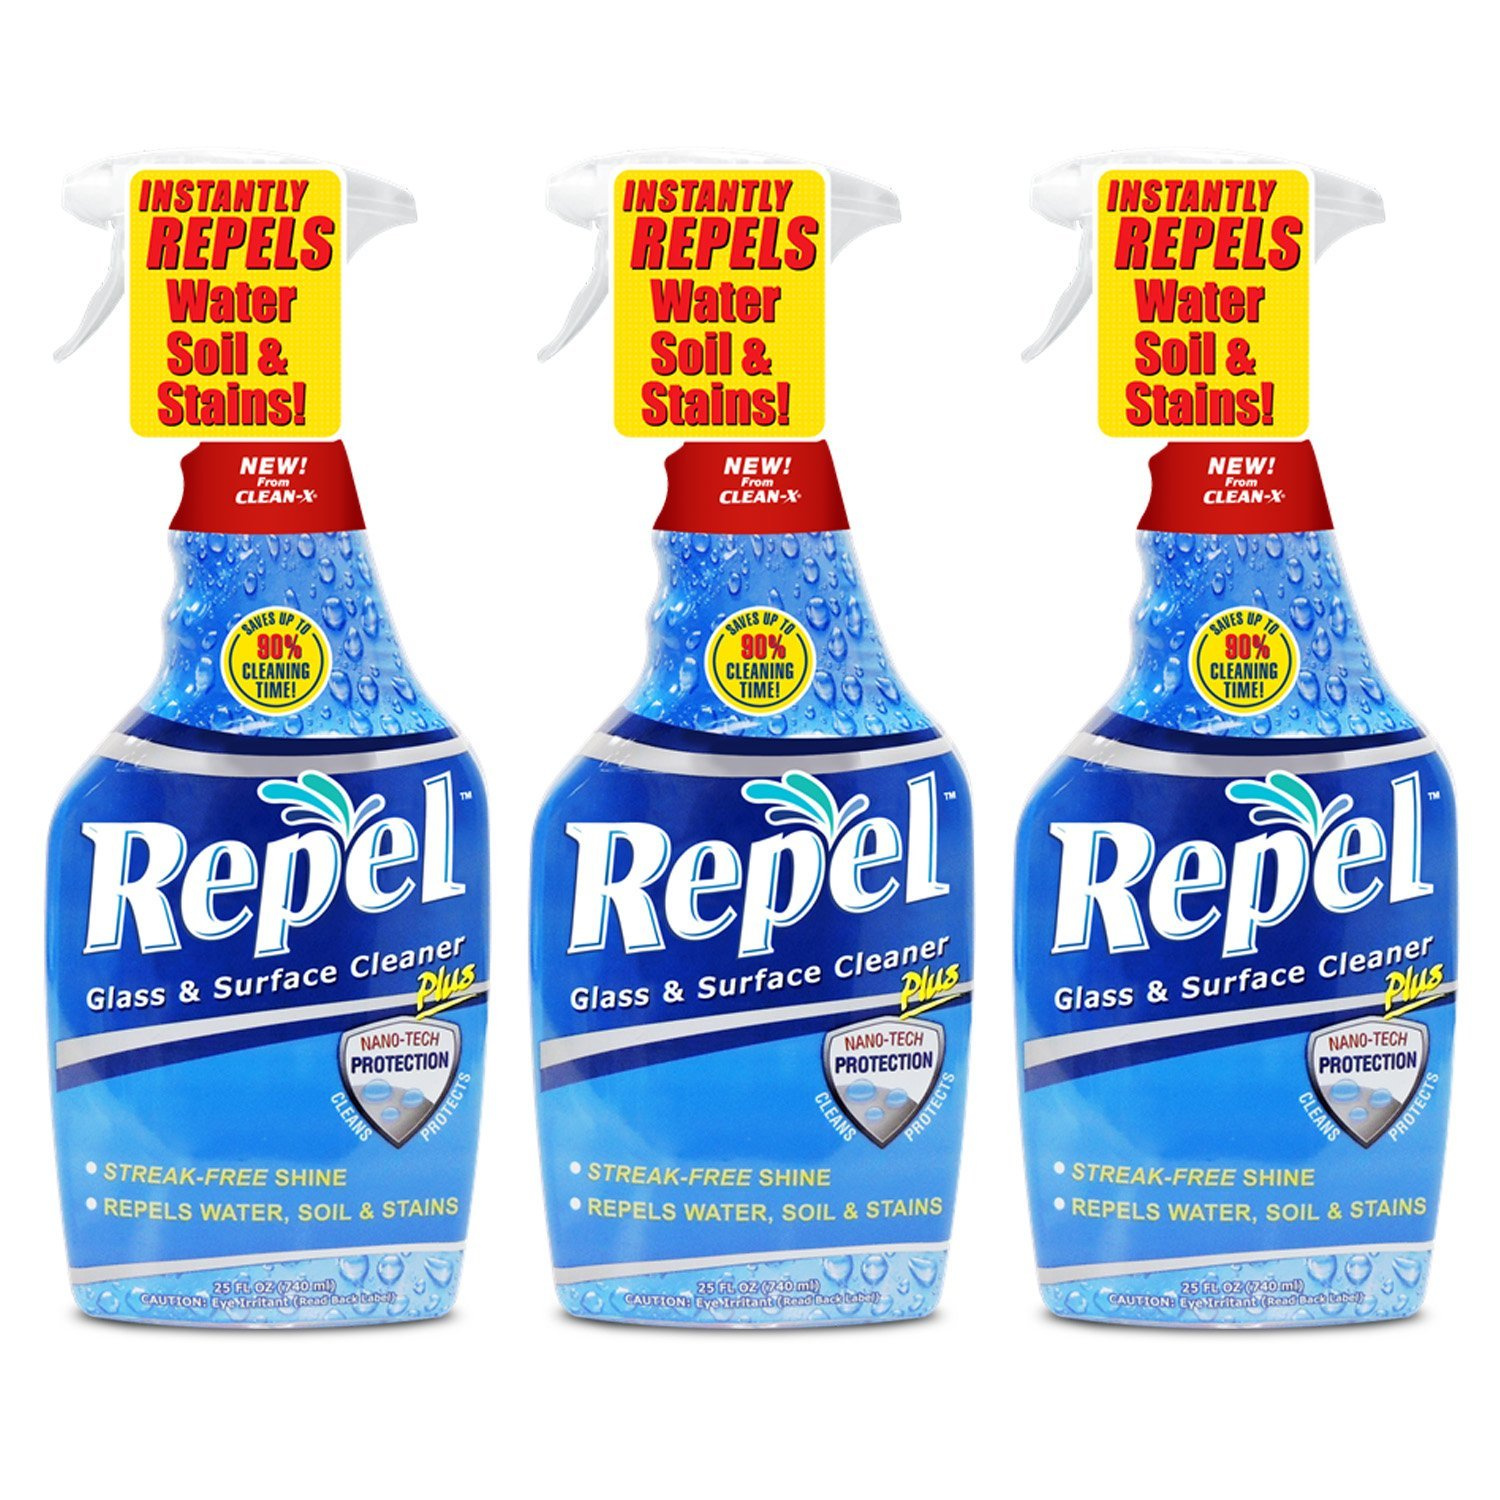 Repel Glass & Surface Cleaner - 3 pack